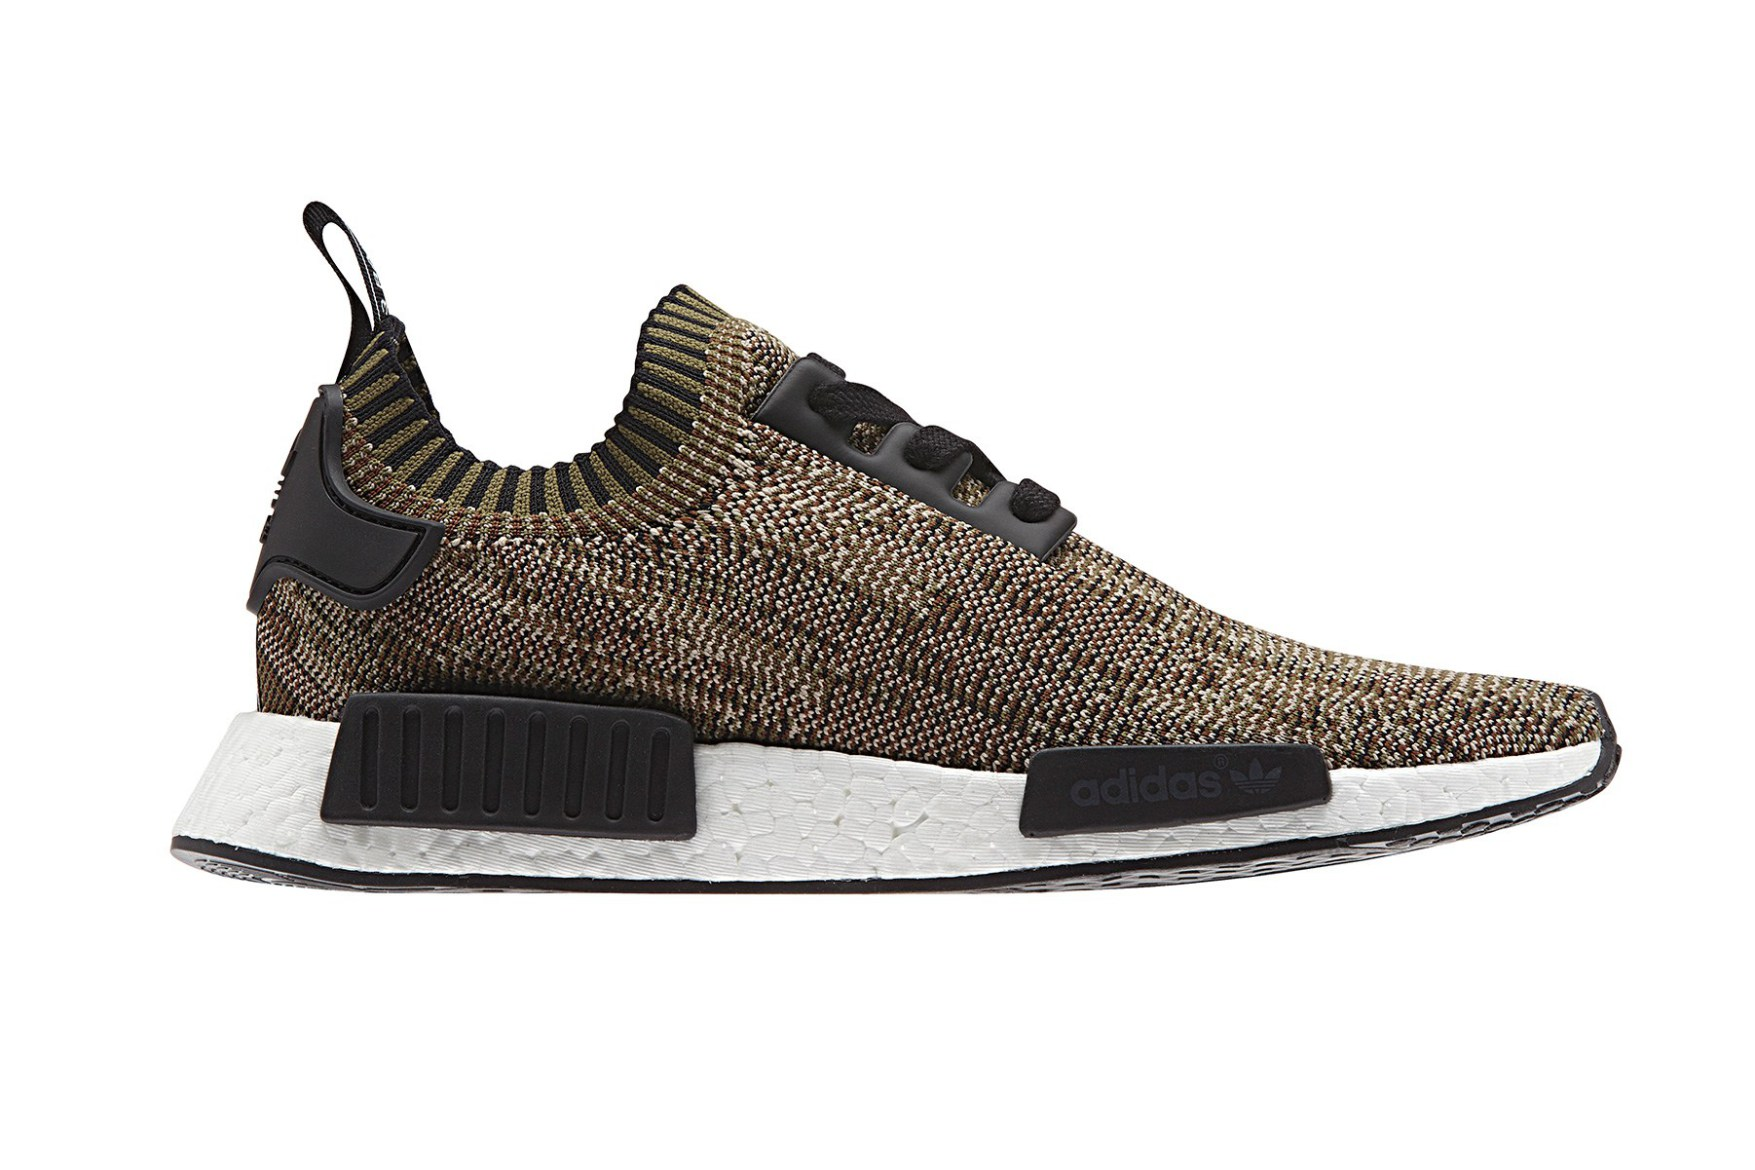 adidas-nmd-camo-us-release-2